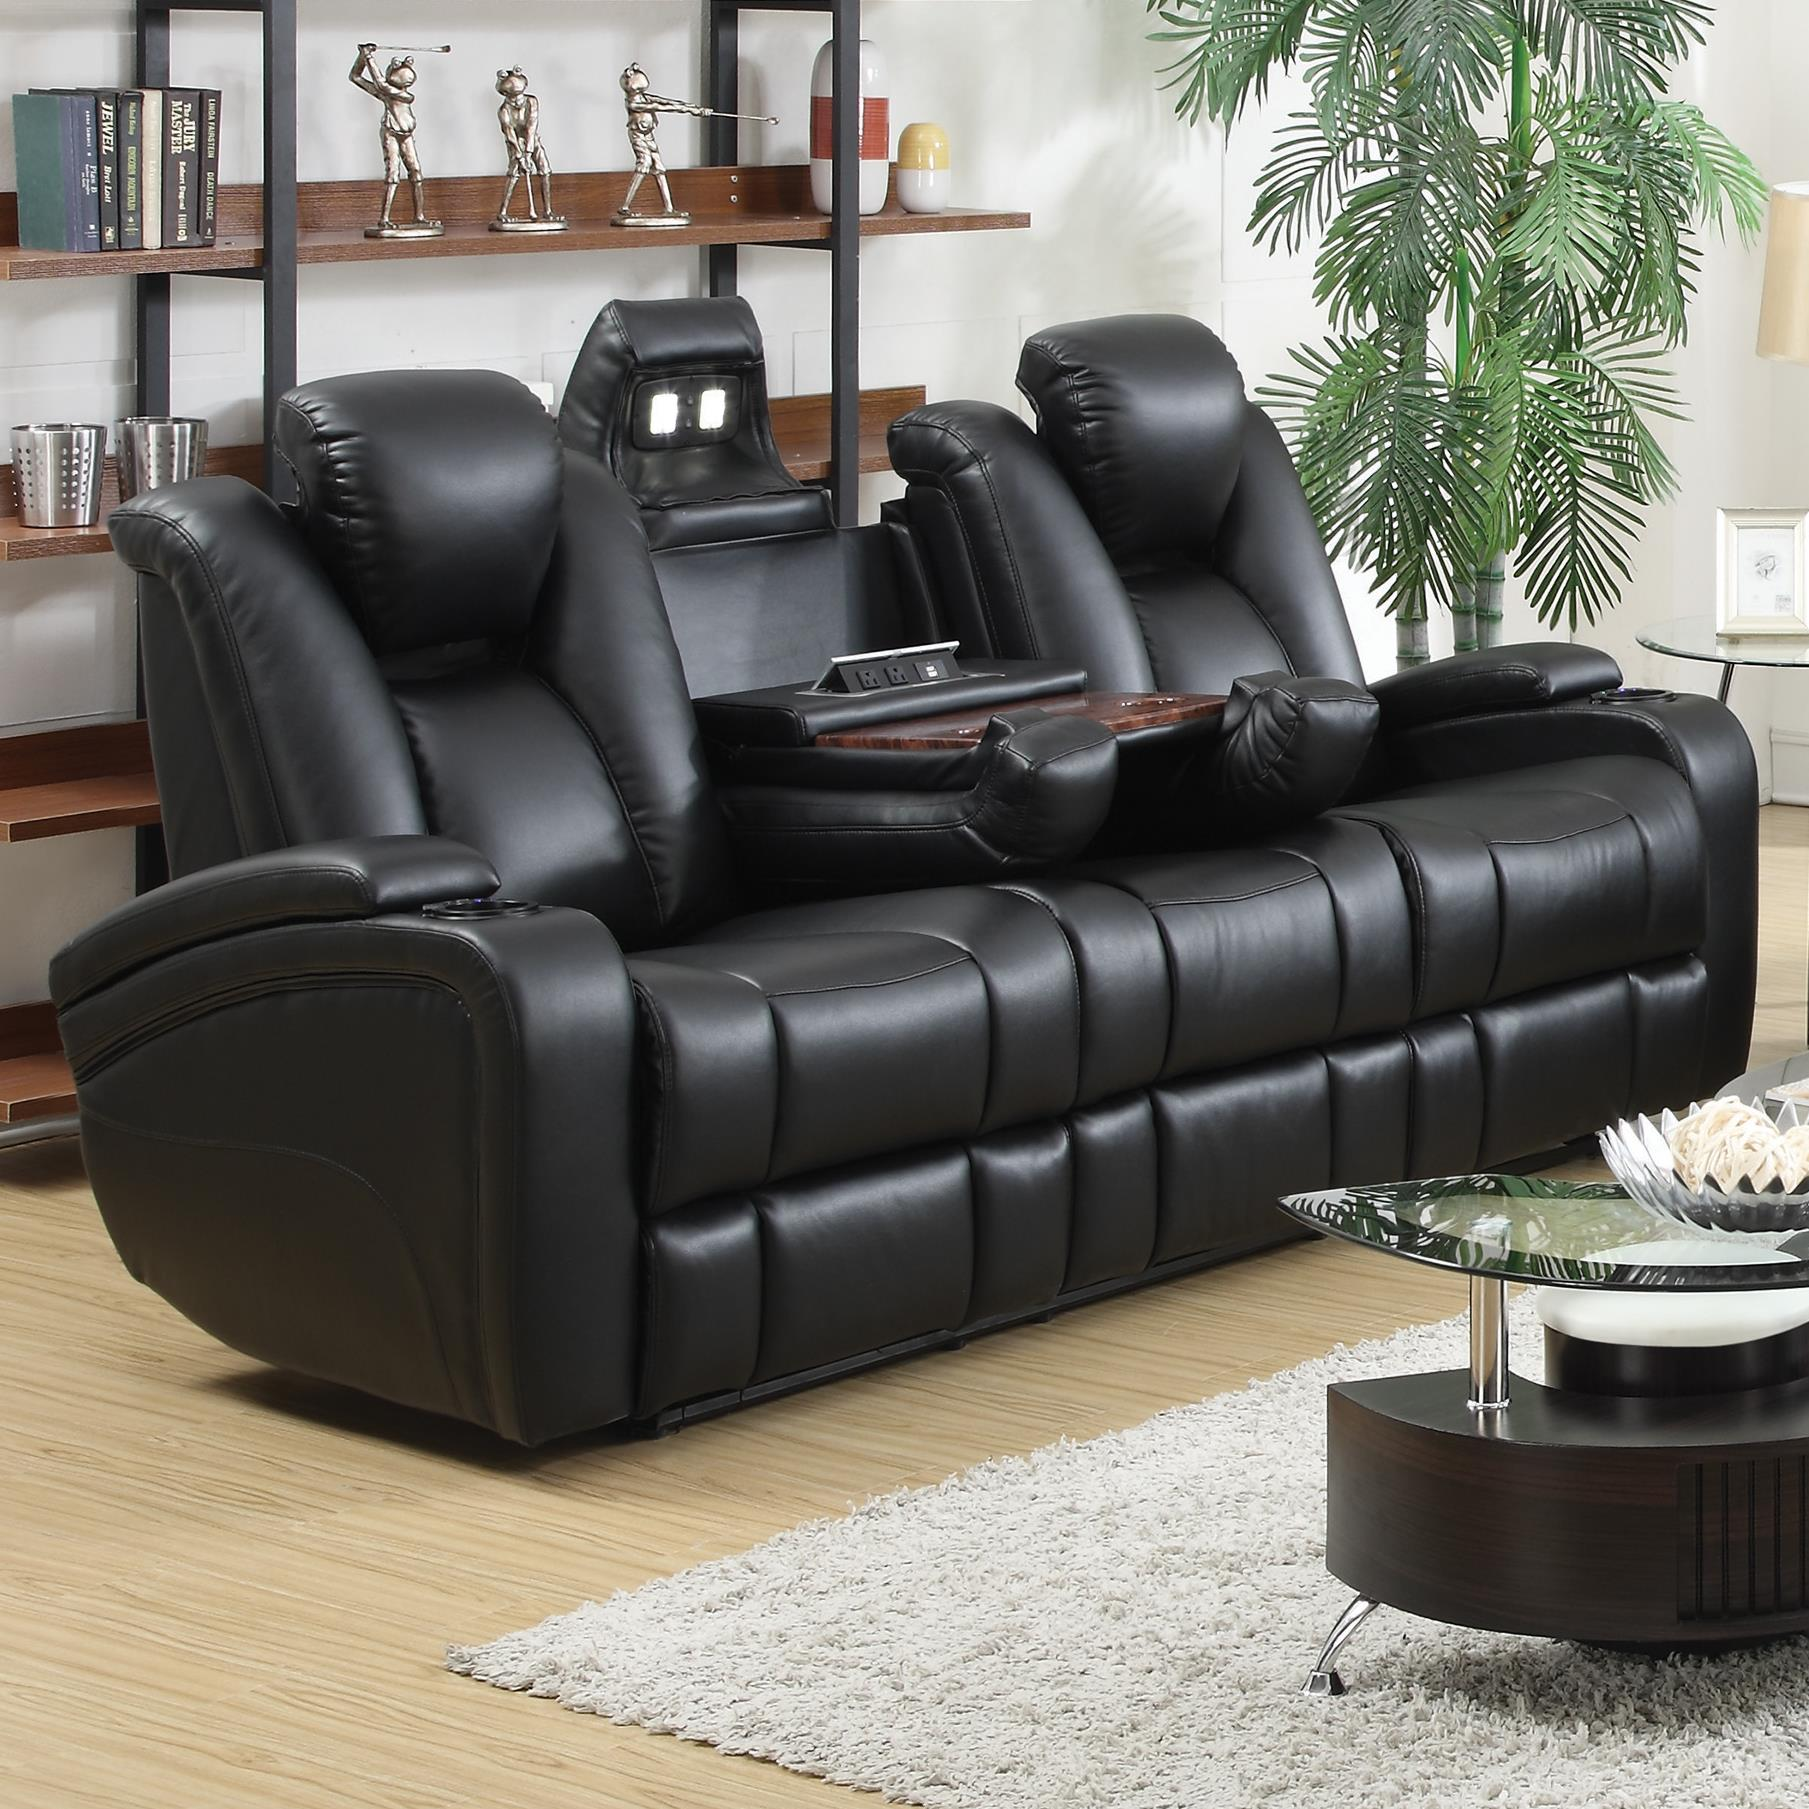 delange leather power reclining sofa theater seats with power adjustable headrests storage in. Black Bedroom Furniture Sets. Home Design Ideas